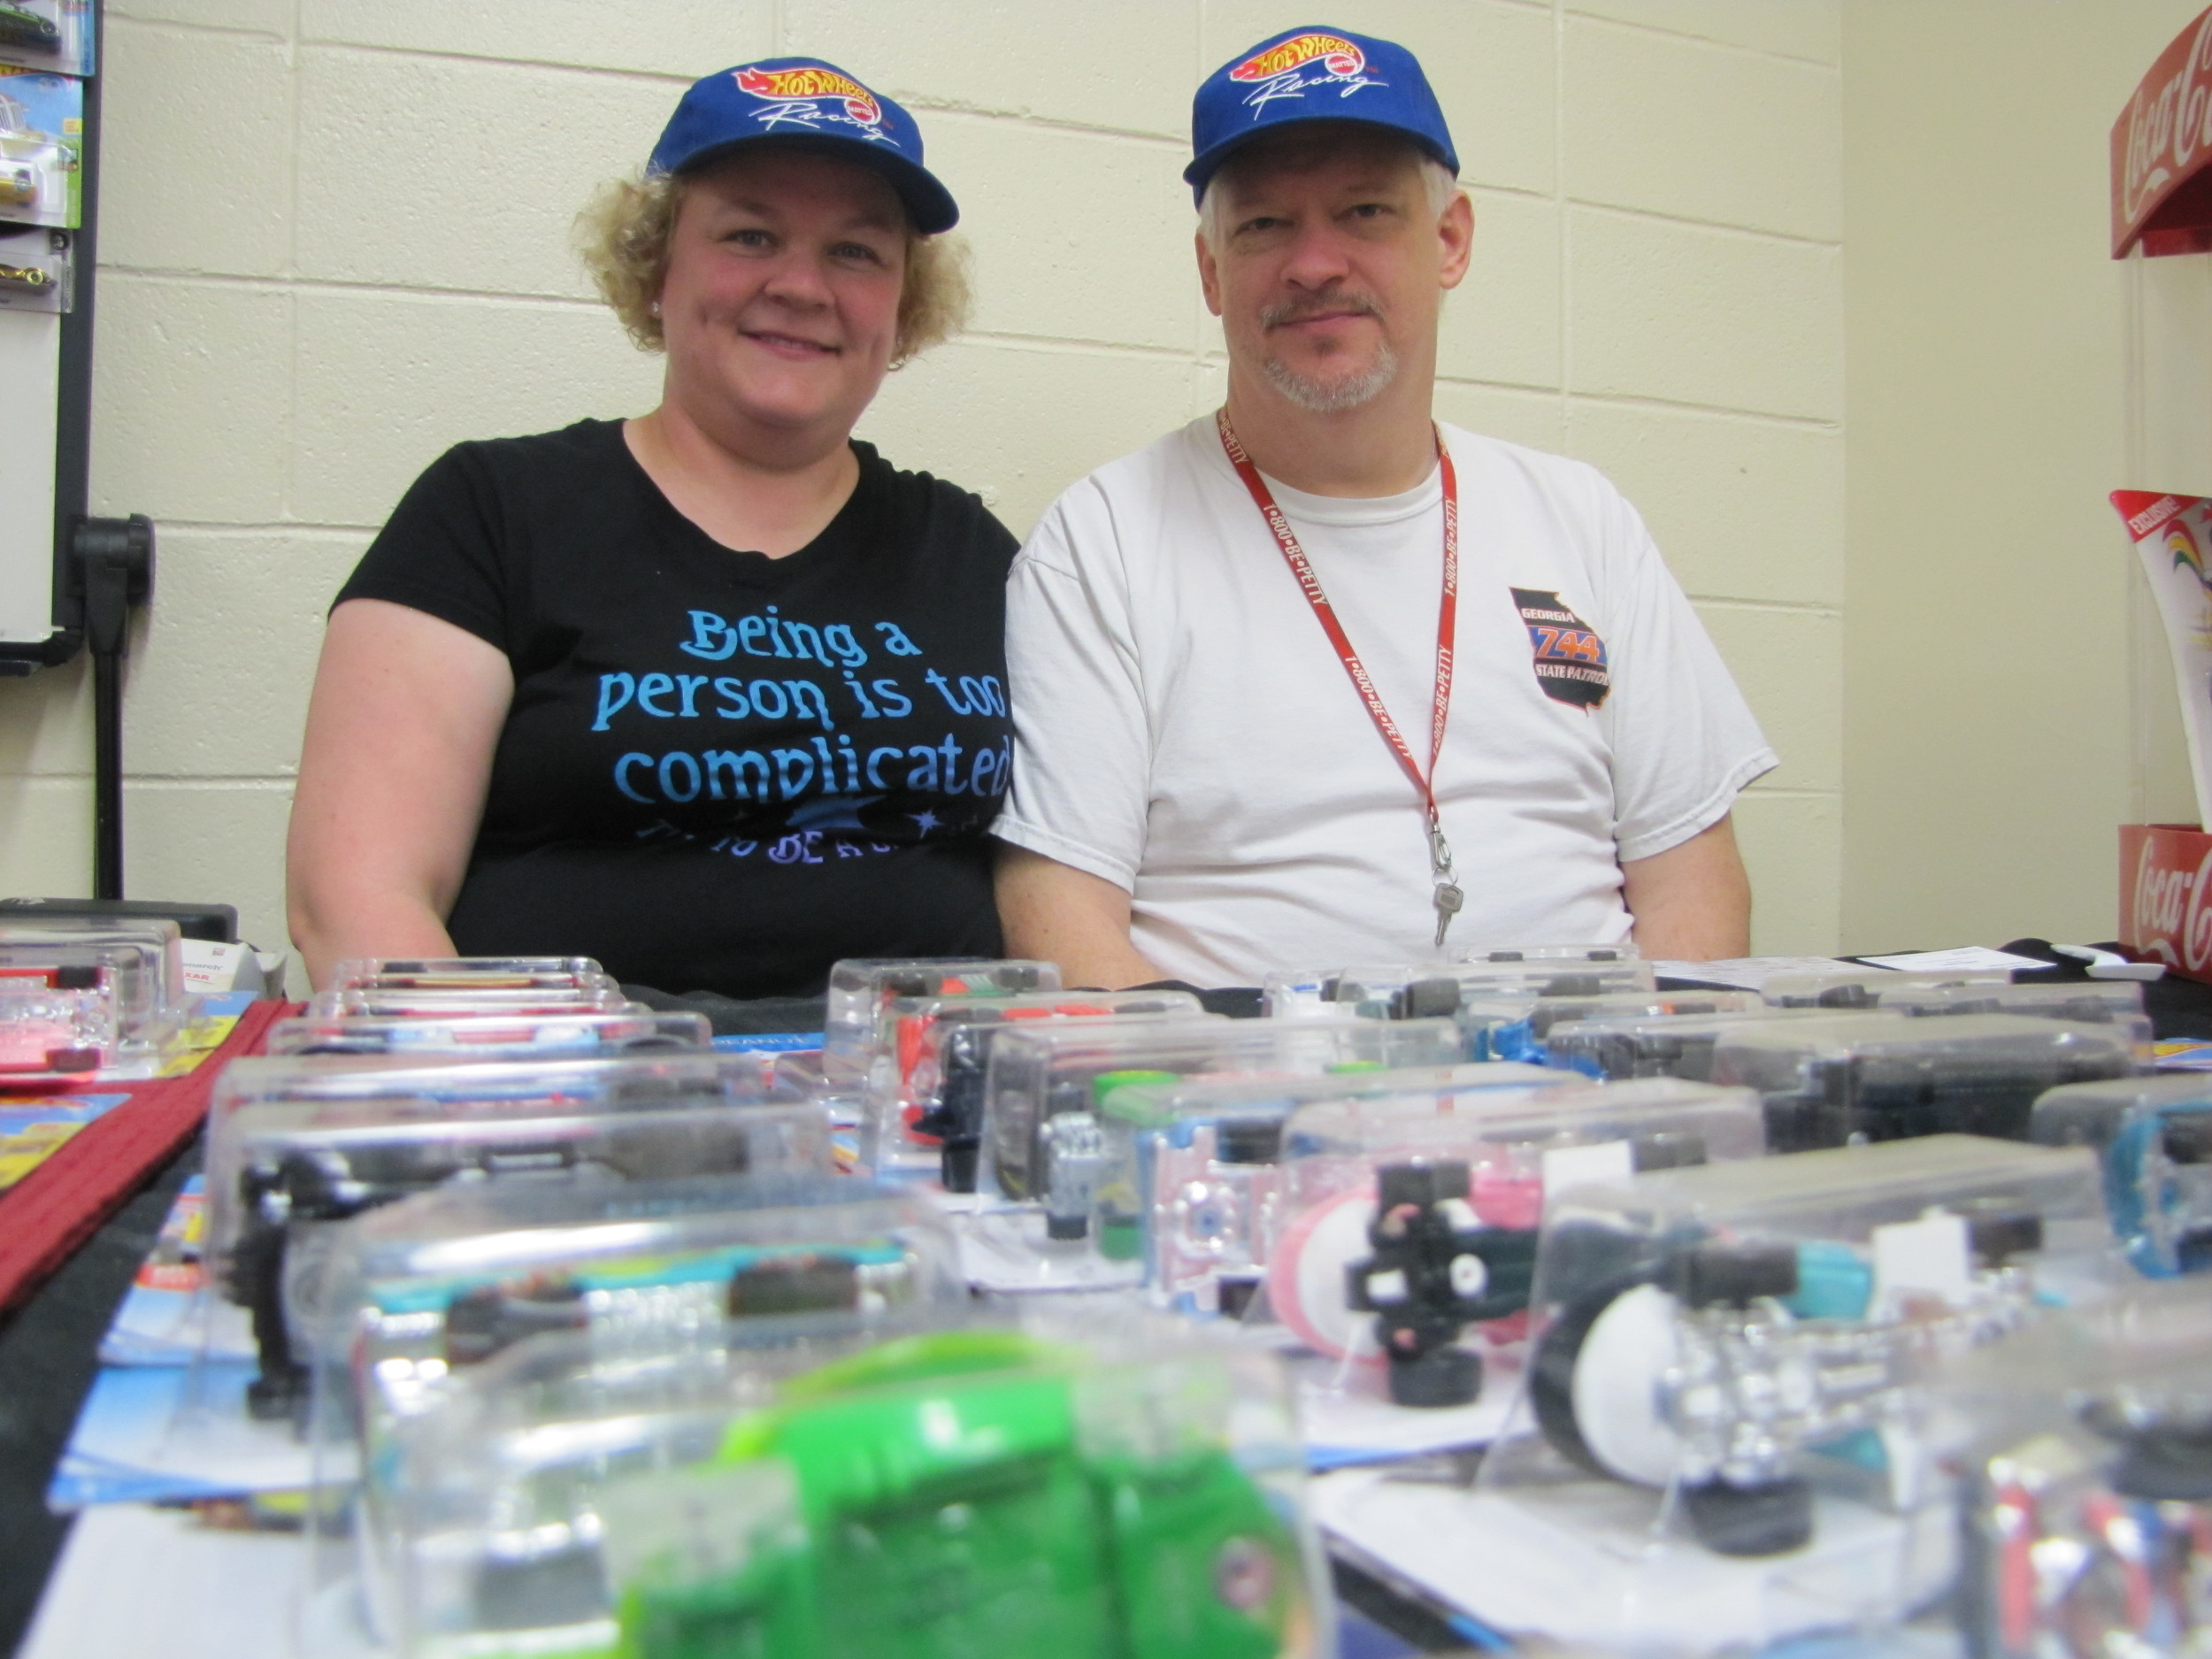 Marcia Hall and Russ Kelly, Jr., show off their lineup of Hot Wheels merchandise.